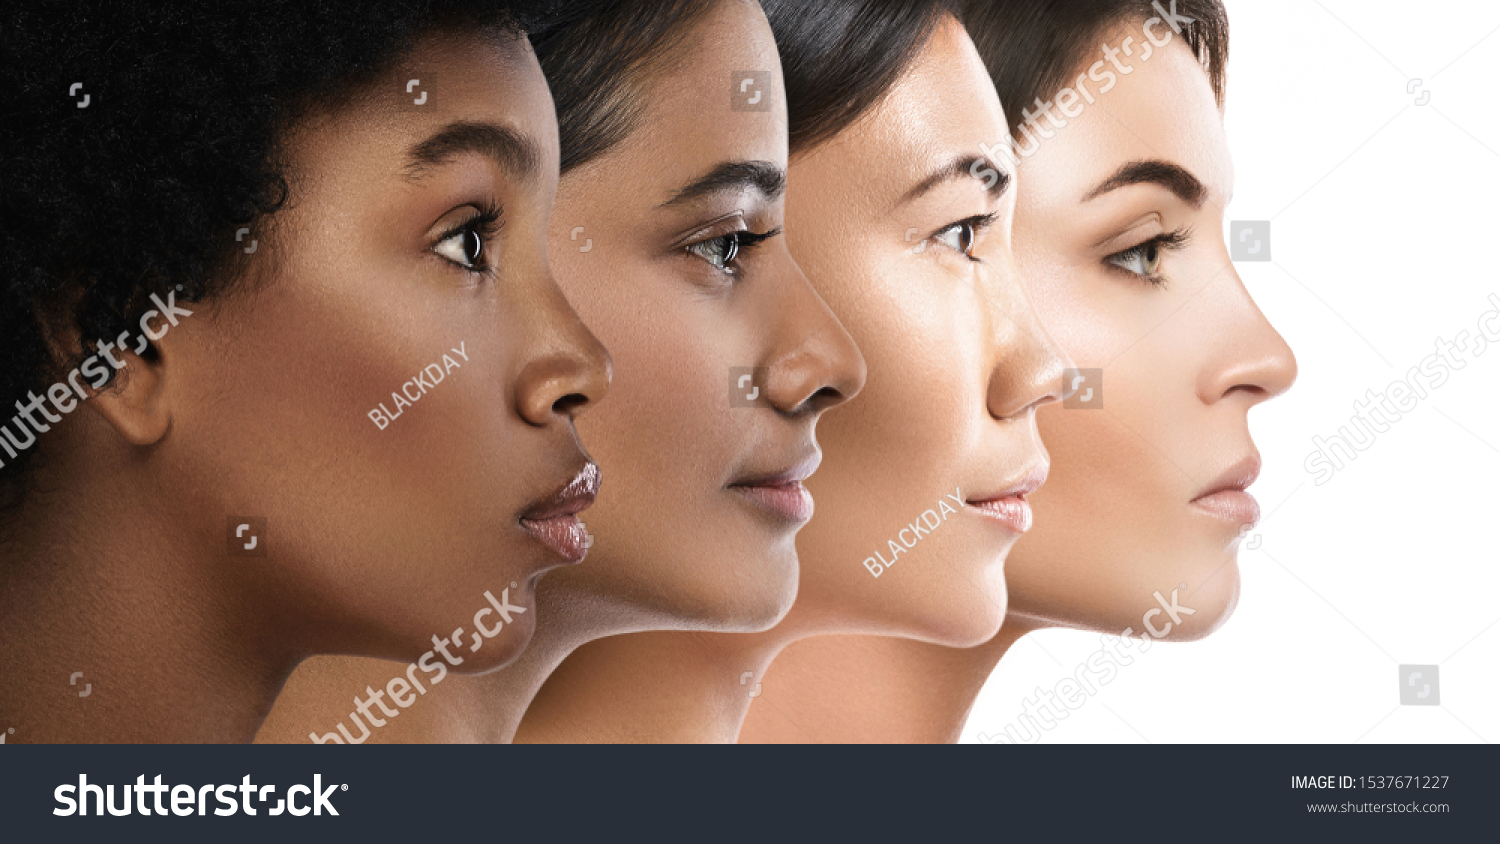 Multi-ethnic beauty. Different ethnicity women - Caucasian, African, Asian and Indian. #1537671227